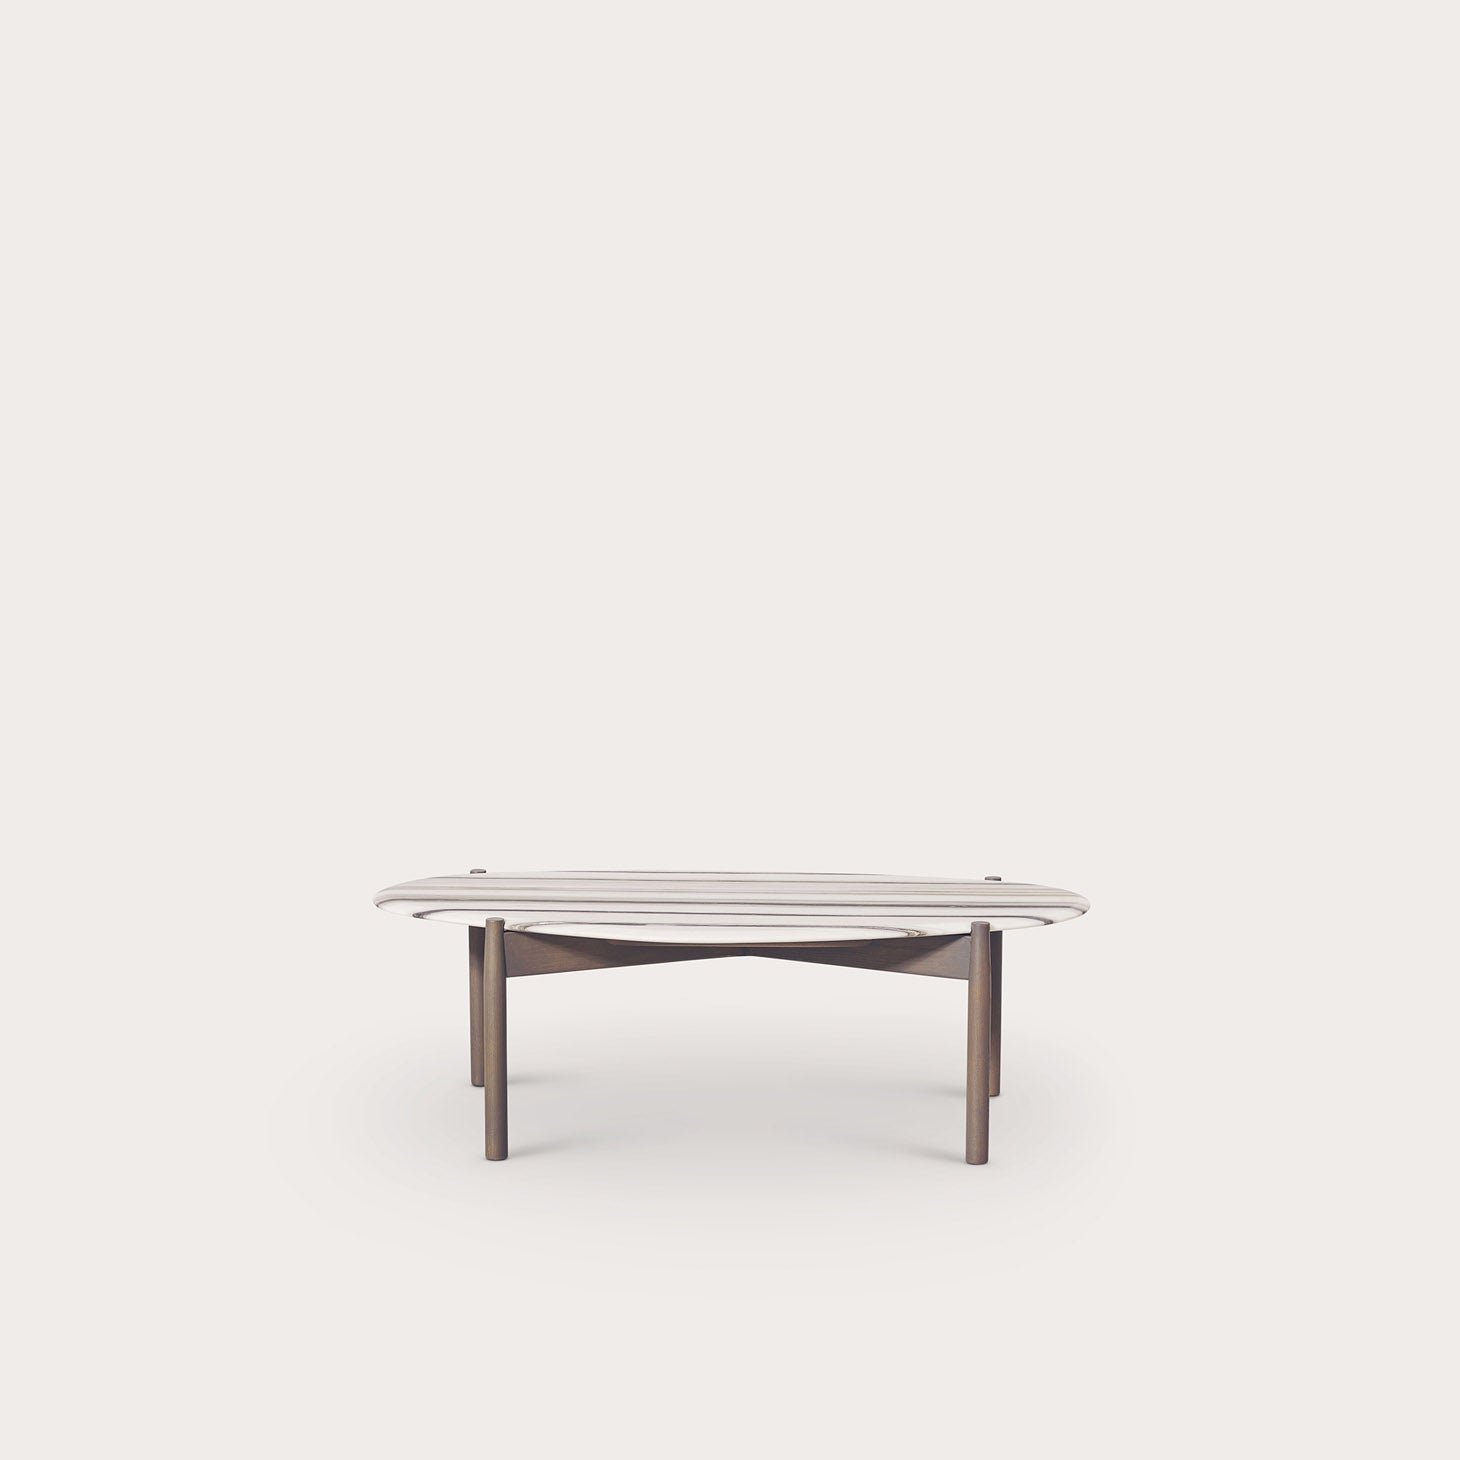 Heath Tables Yabu Pushelberg Designer Furniture Sku: 247-230-10296